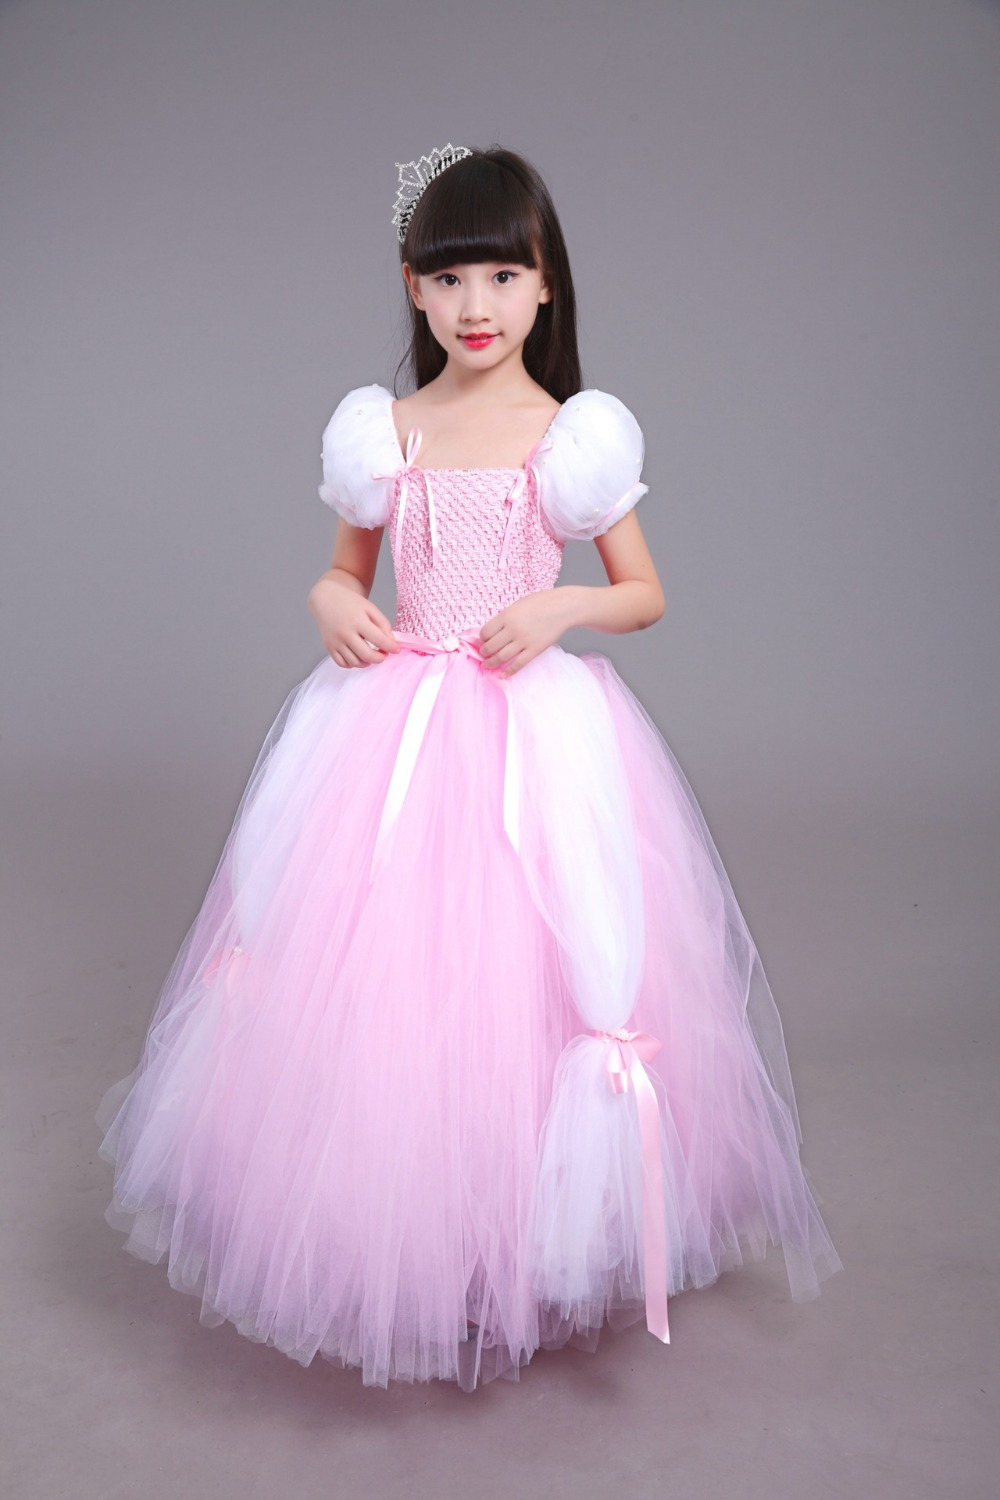 Performance Ball Gown Dress Kids Girl Latin Dance Wedding Ballet Children Party Christmas Birthday Gift Clothes Toddlers infant emax rs2205 2300kv cw ccw brushless motor rc plane 4 pcs fvt little bee 20a mini esc 2 4s for fpv mini racing quadcopter